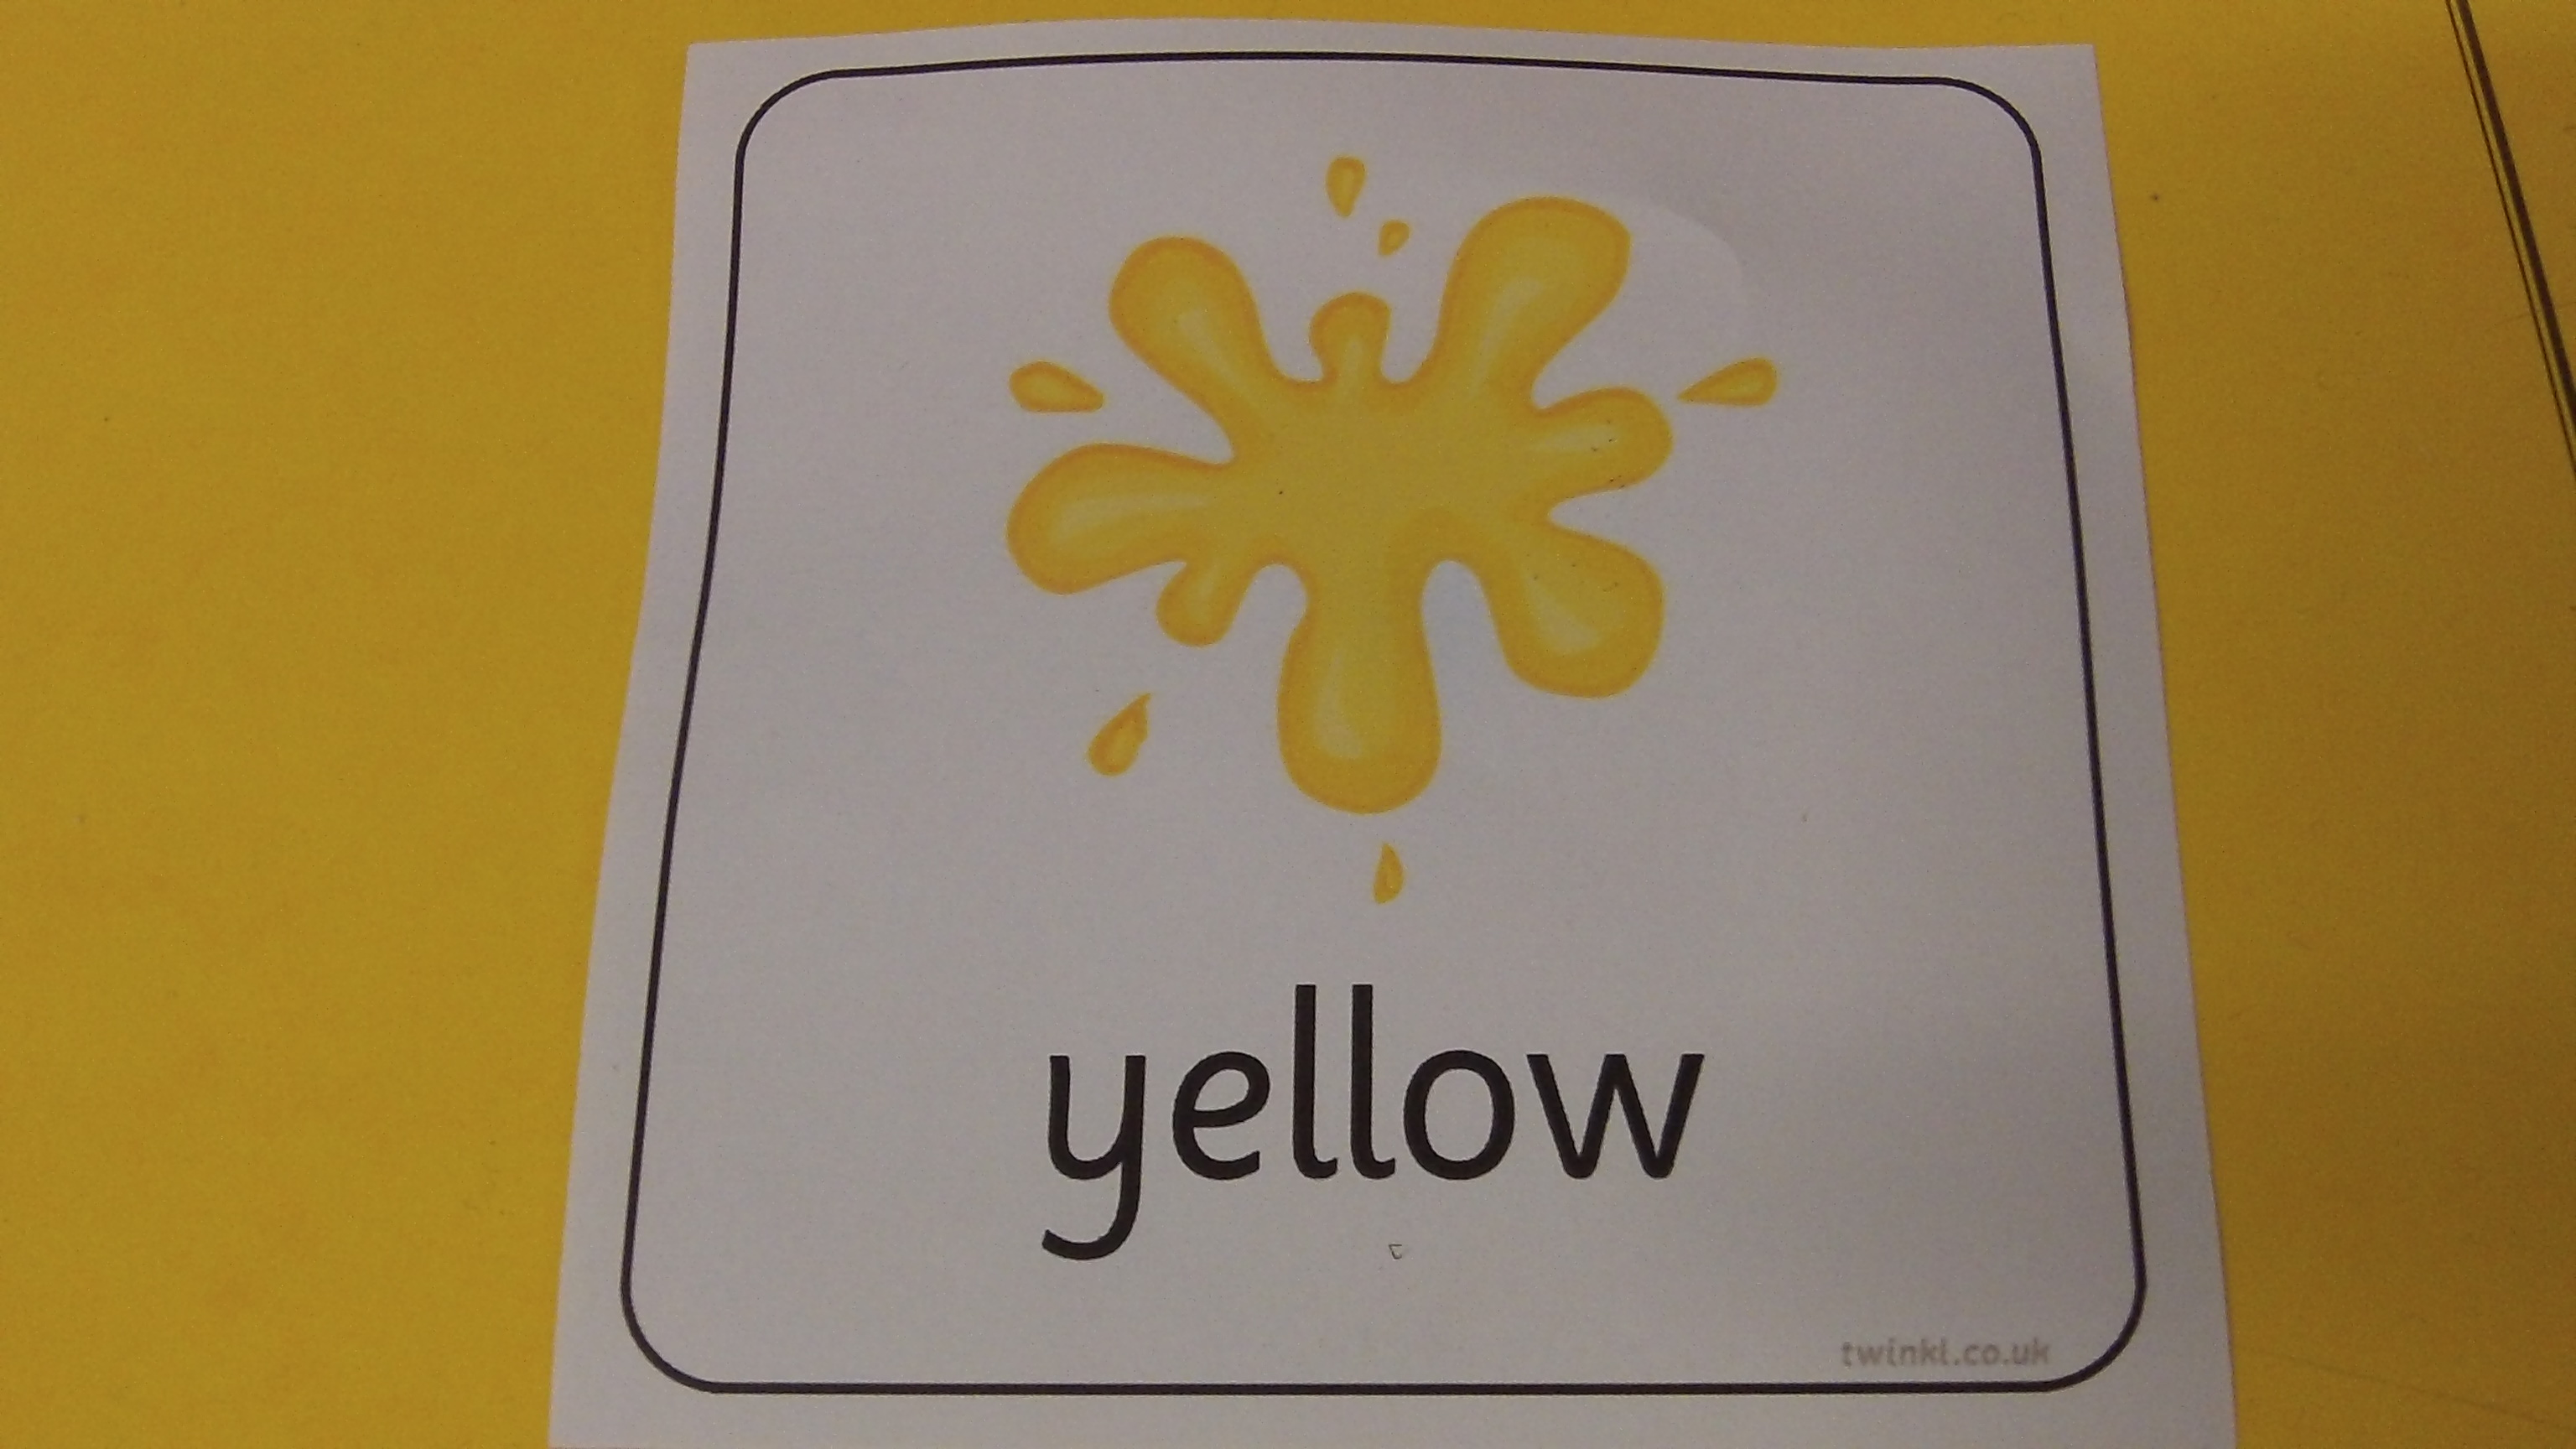 Twinkl Resource Yellow Colour Flashcard